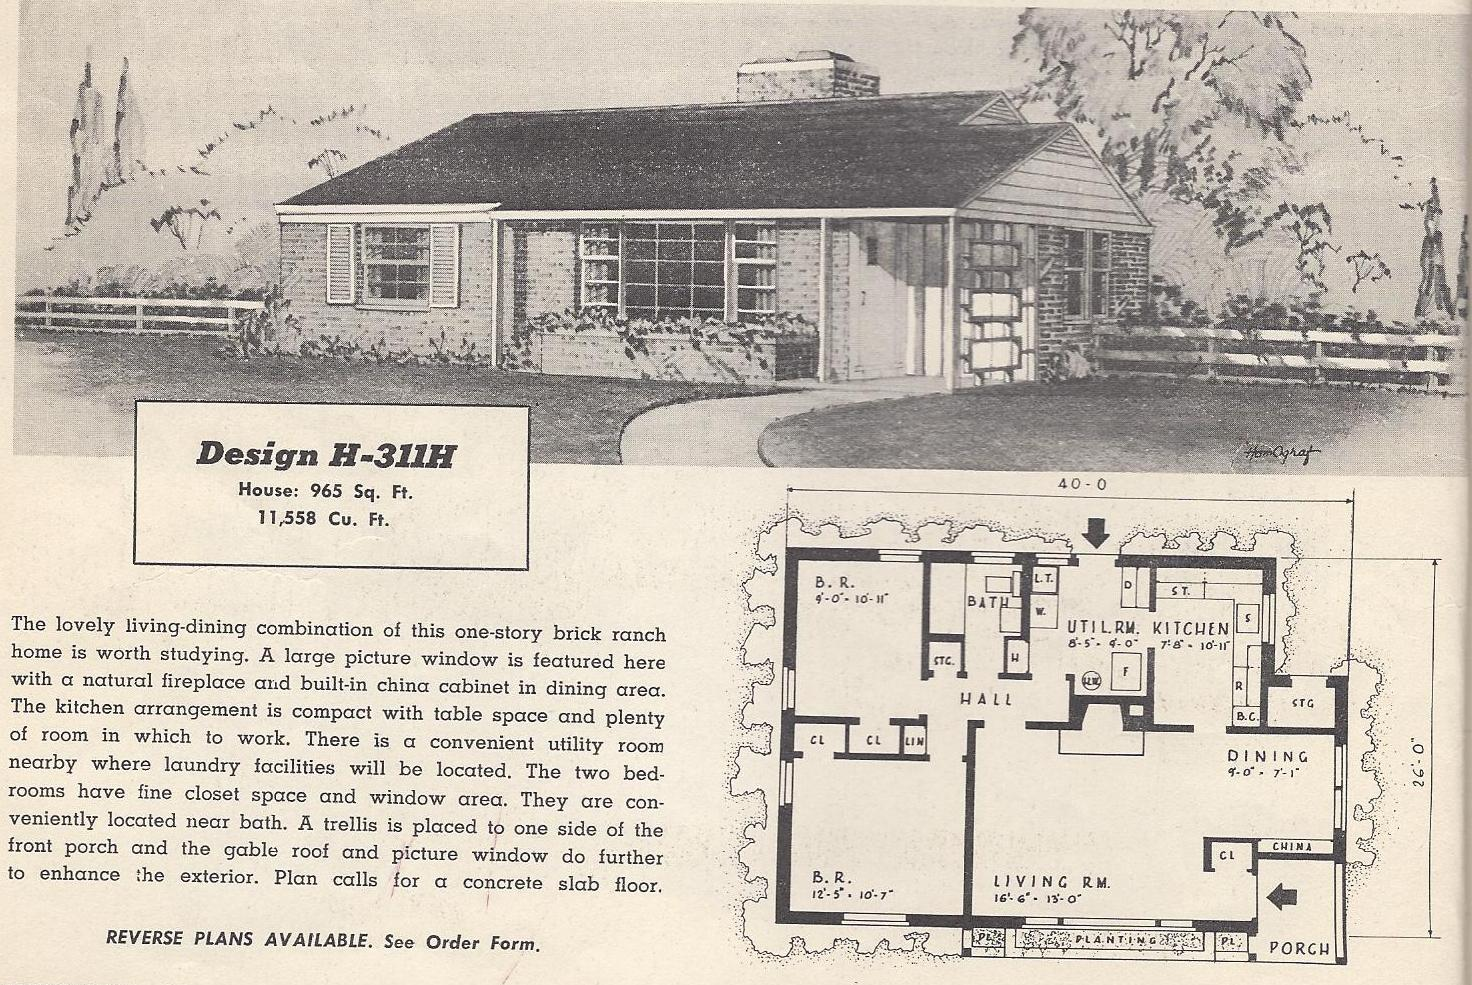 Vintage house plans 311h antique alter ego for Vintage home plans